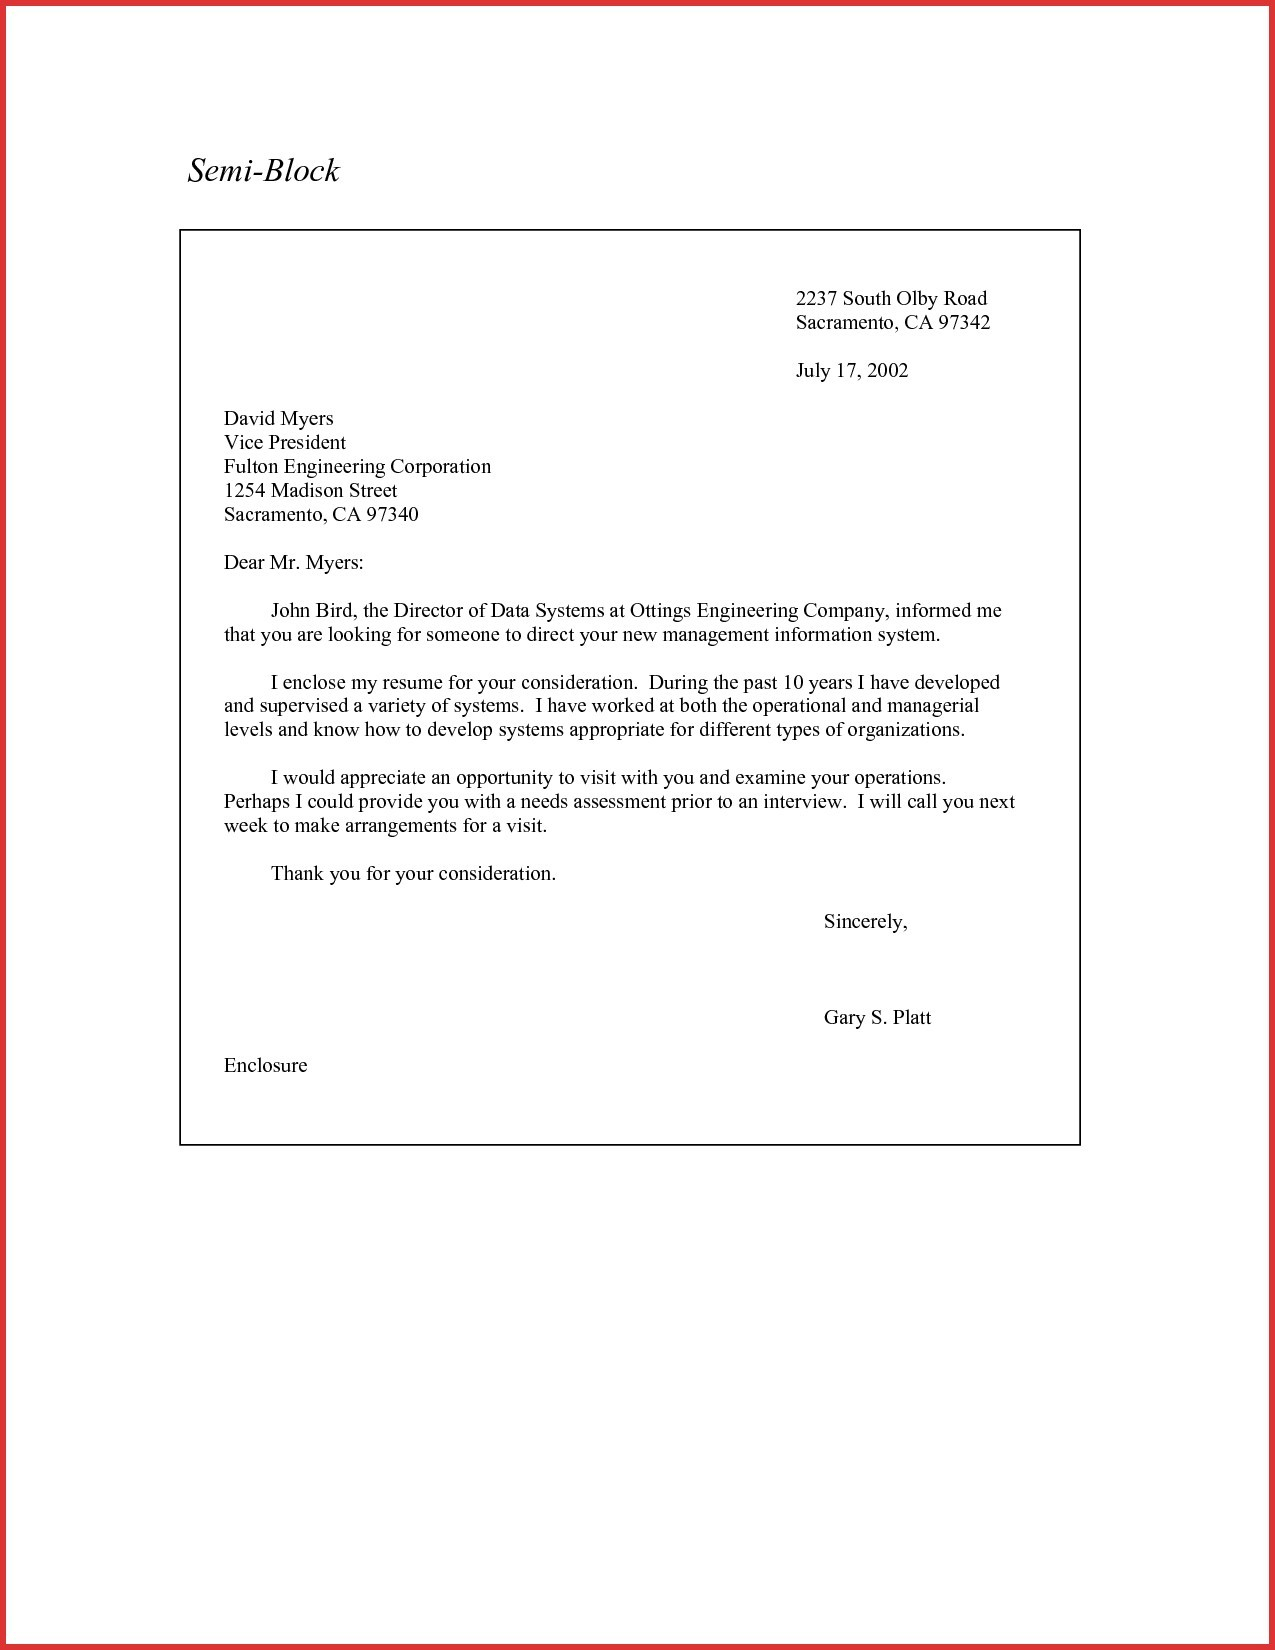 modified block letter template example-Letter Resignation Block Letter format New Resignation Letter Semi Block format Archives Jhconstruction Co 8-p